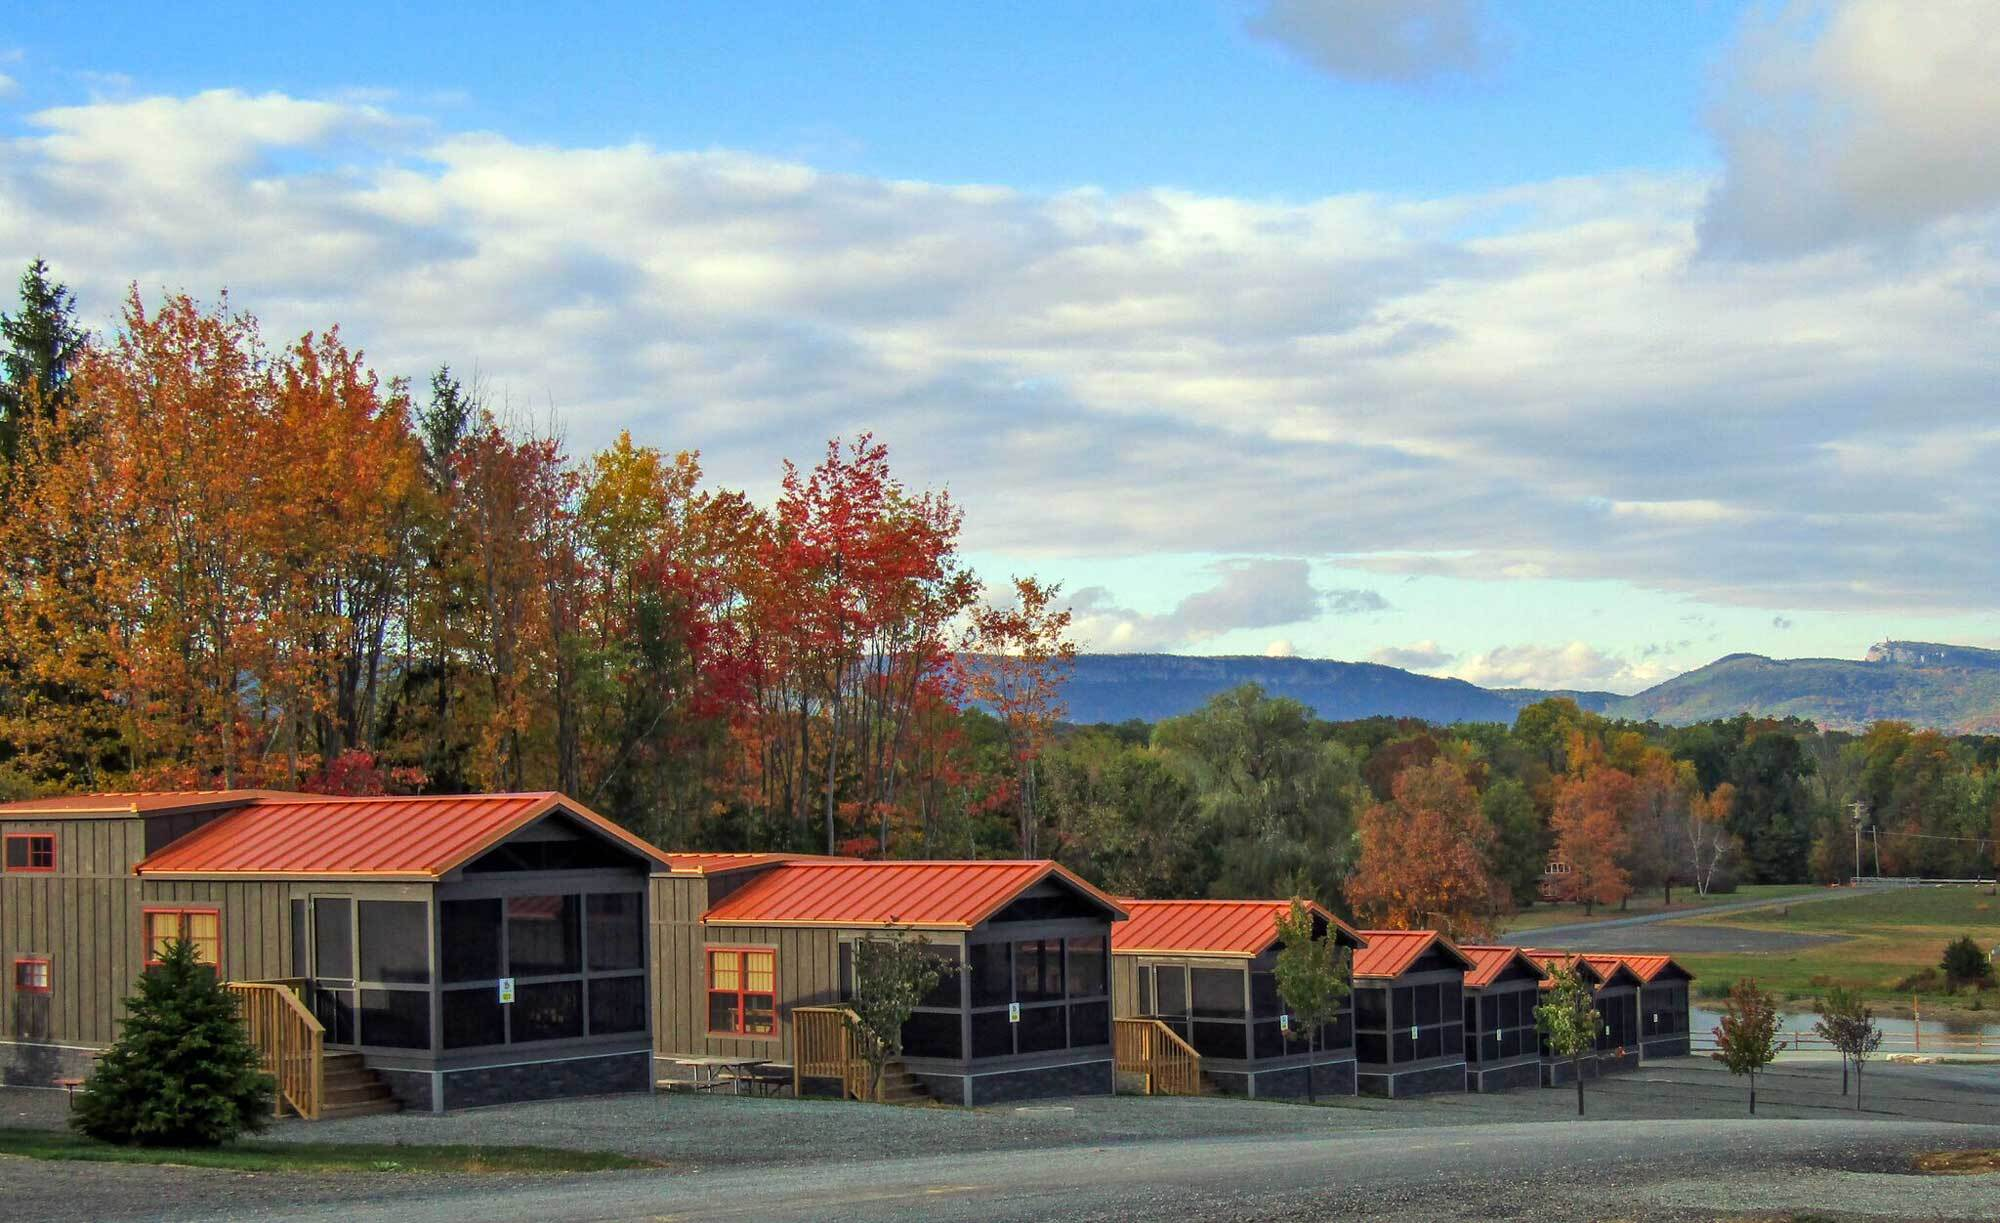 Cabins at Yogi Bear's Jellystone Park Camp-Resort in Gardiner, New York.